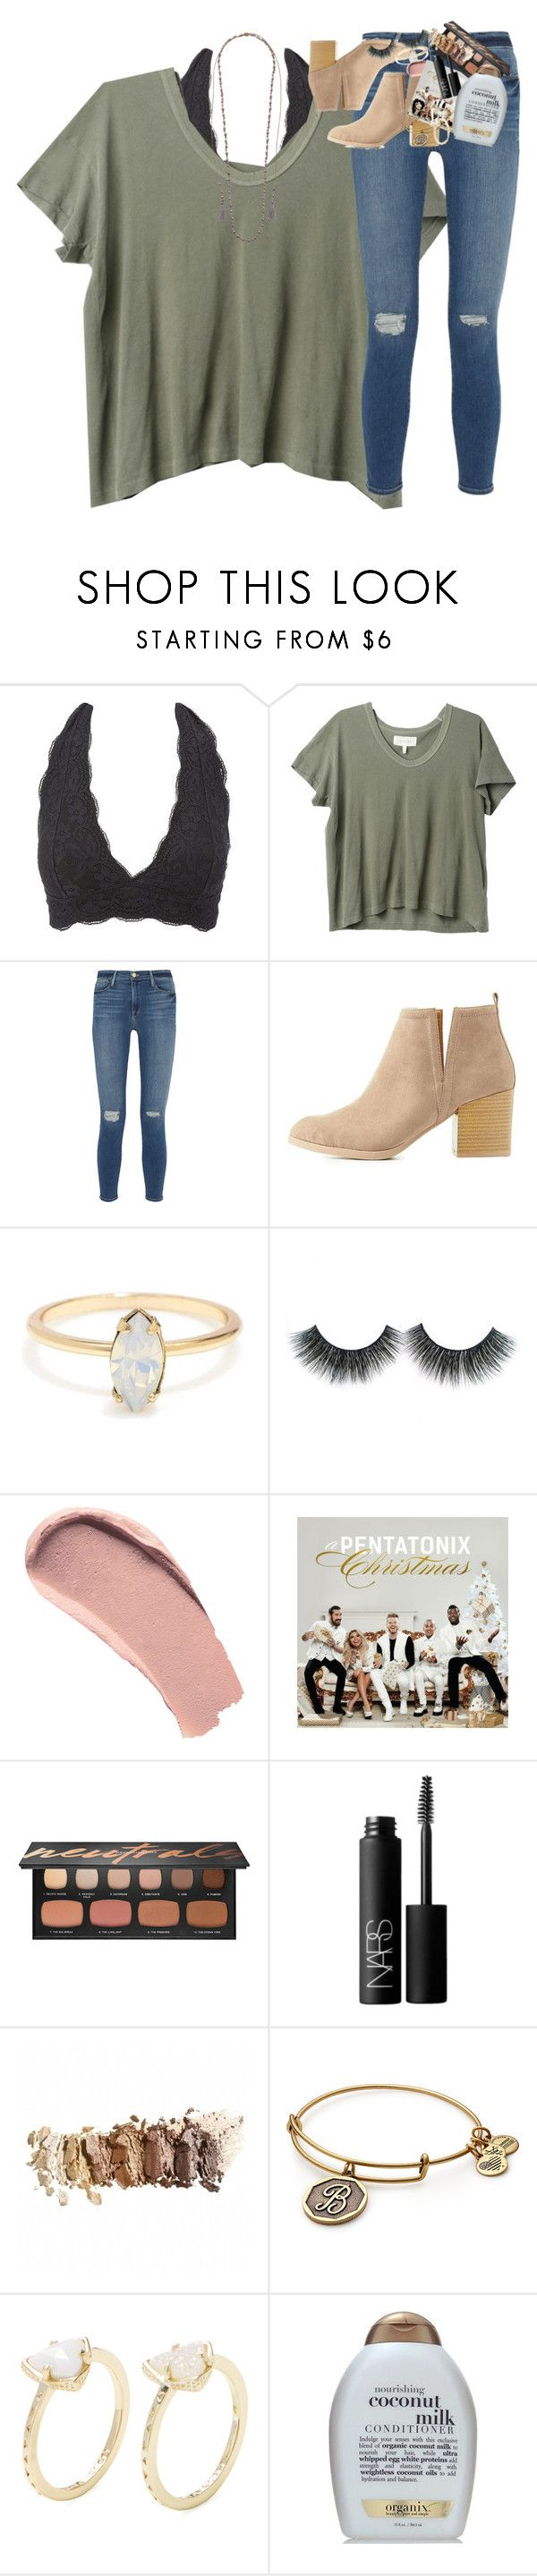 """""""qotd: favorite ice cream flavor?"""" by classynsouthern ❤ liked on Polyvore featuring Charlotte Russe, The Great, Frame, Burberry, Bare Escentuals, NARS Cosmetics, Alex and Ani, Kendra Scott and Chan Luu"""